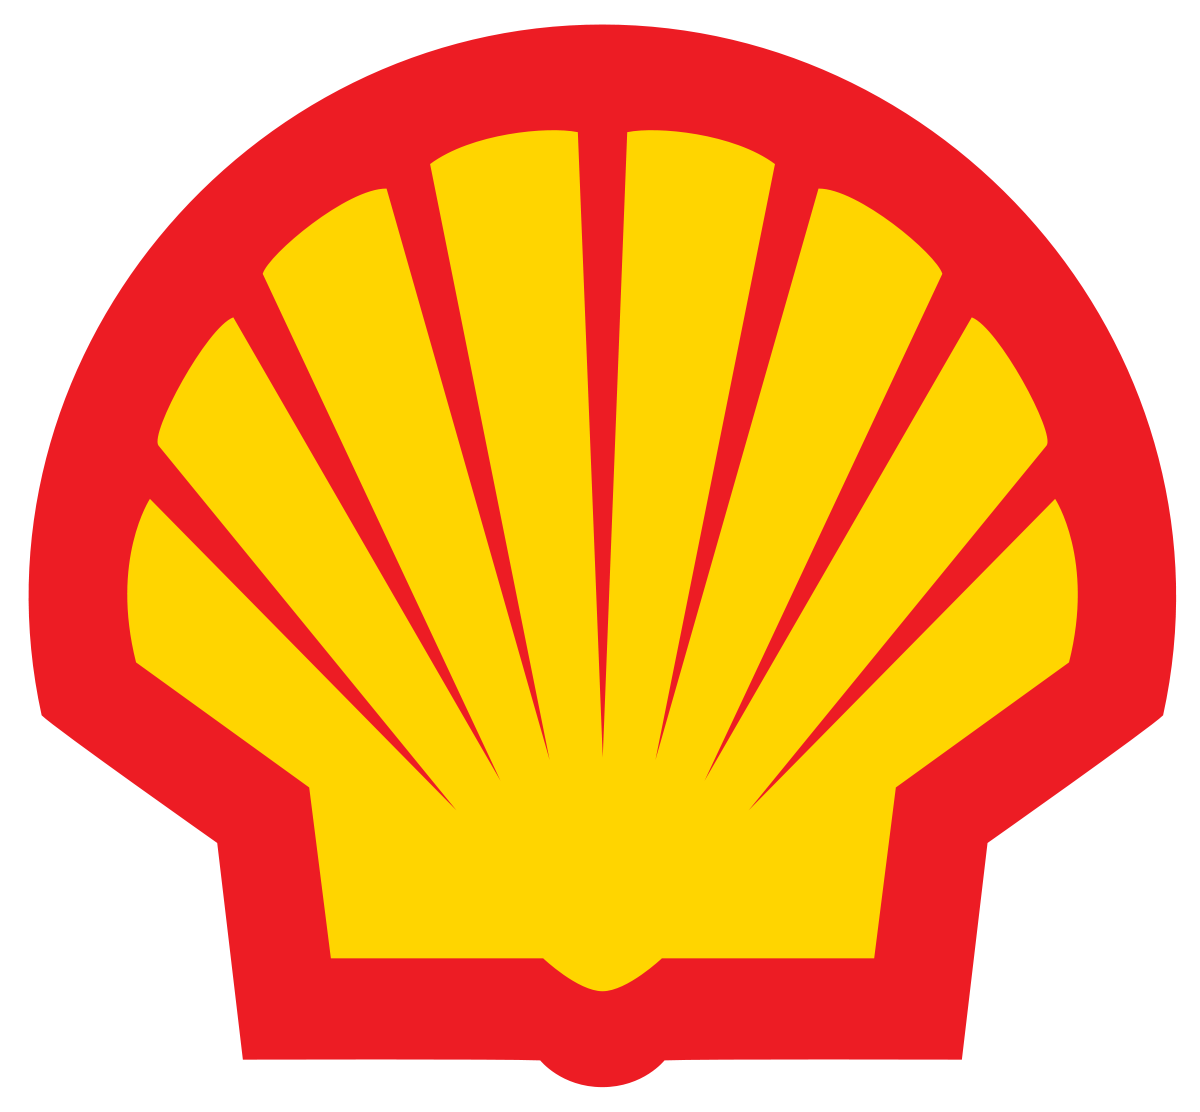 Shell Gasonline - 89 Octane A variety of 2 and 4 stroke motor oilsStar Tron, Coolant,and a variety of other products for your vessel